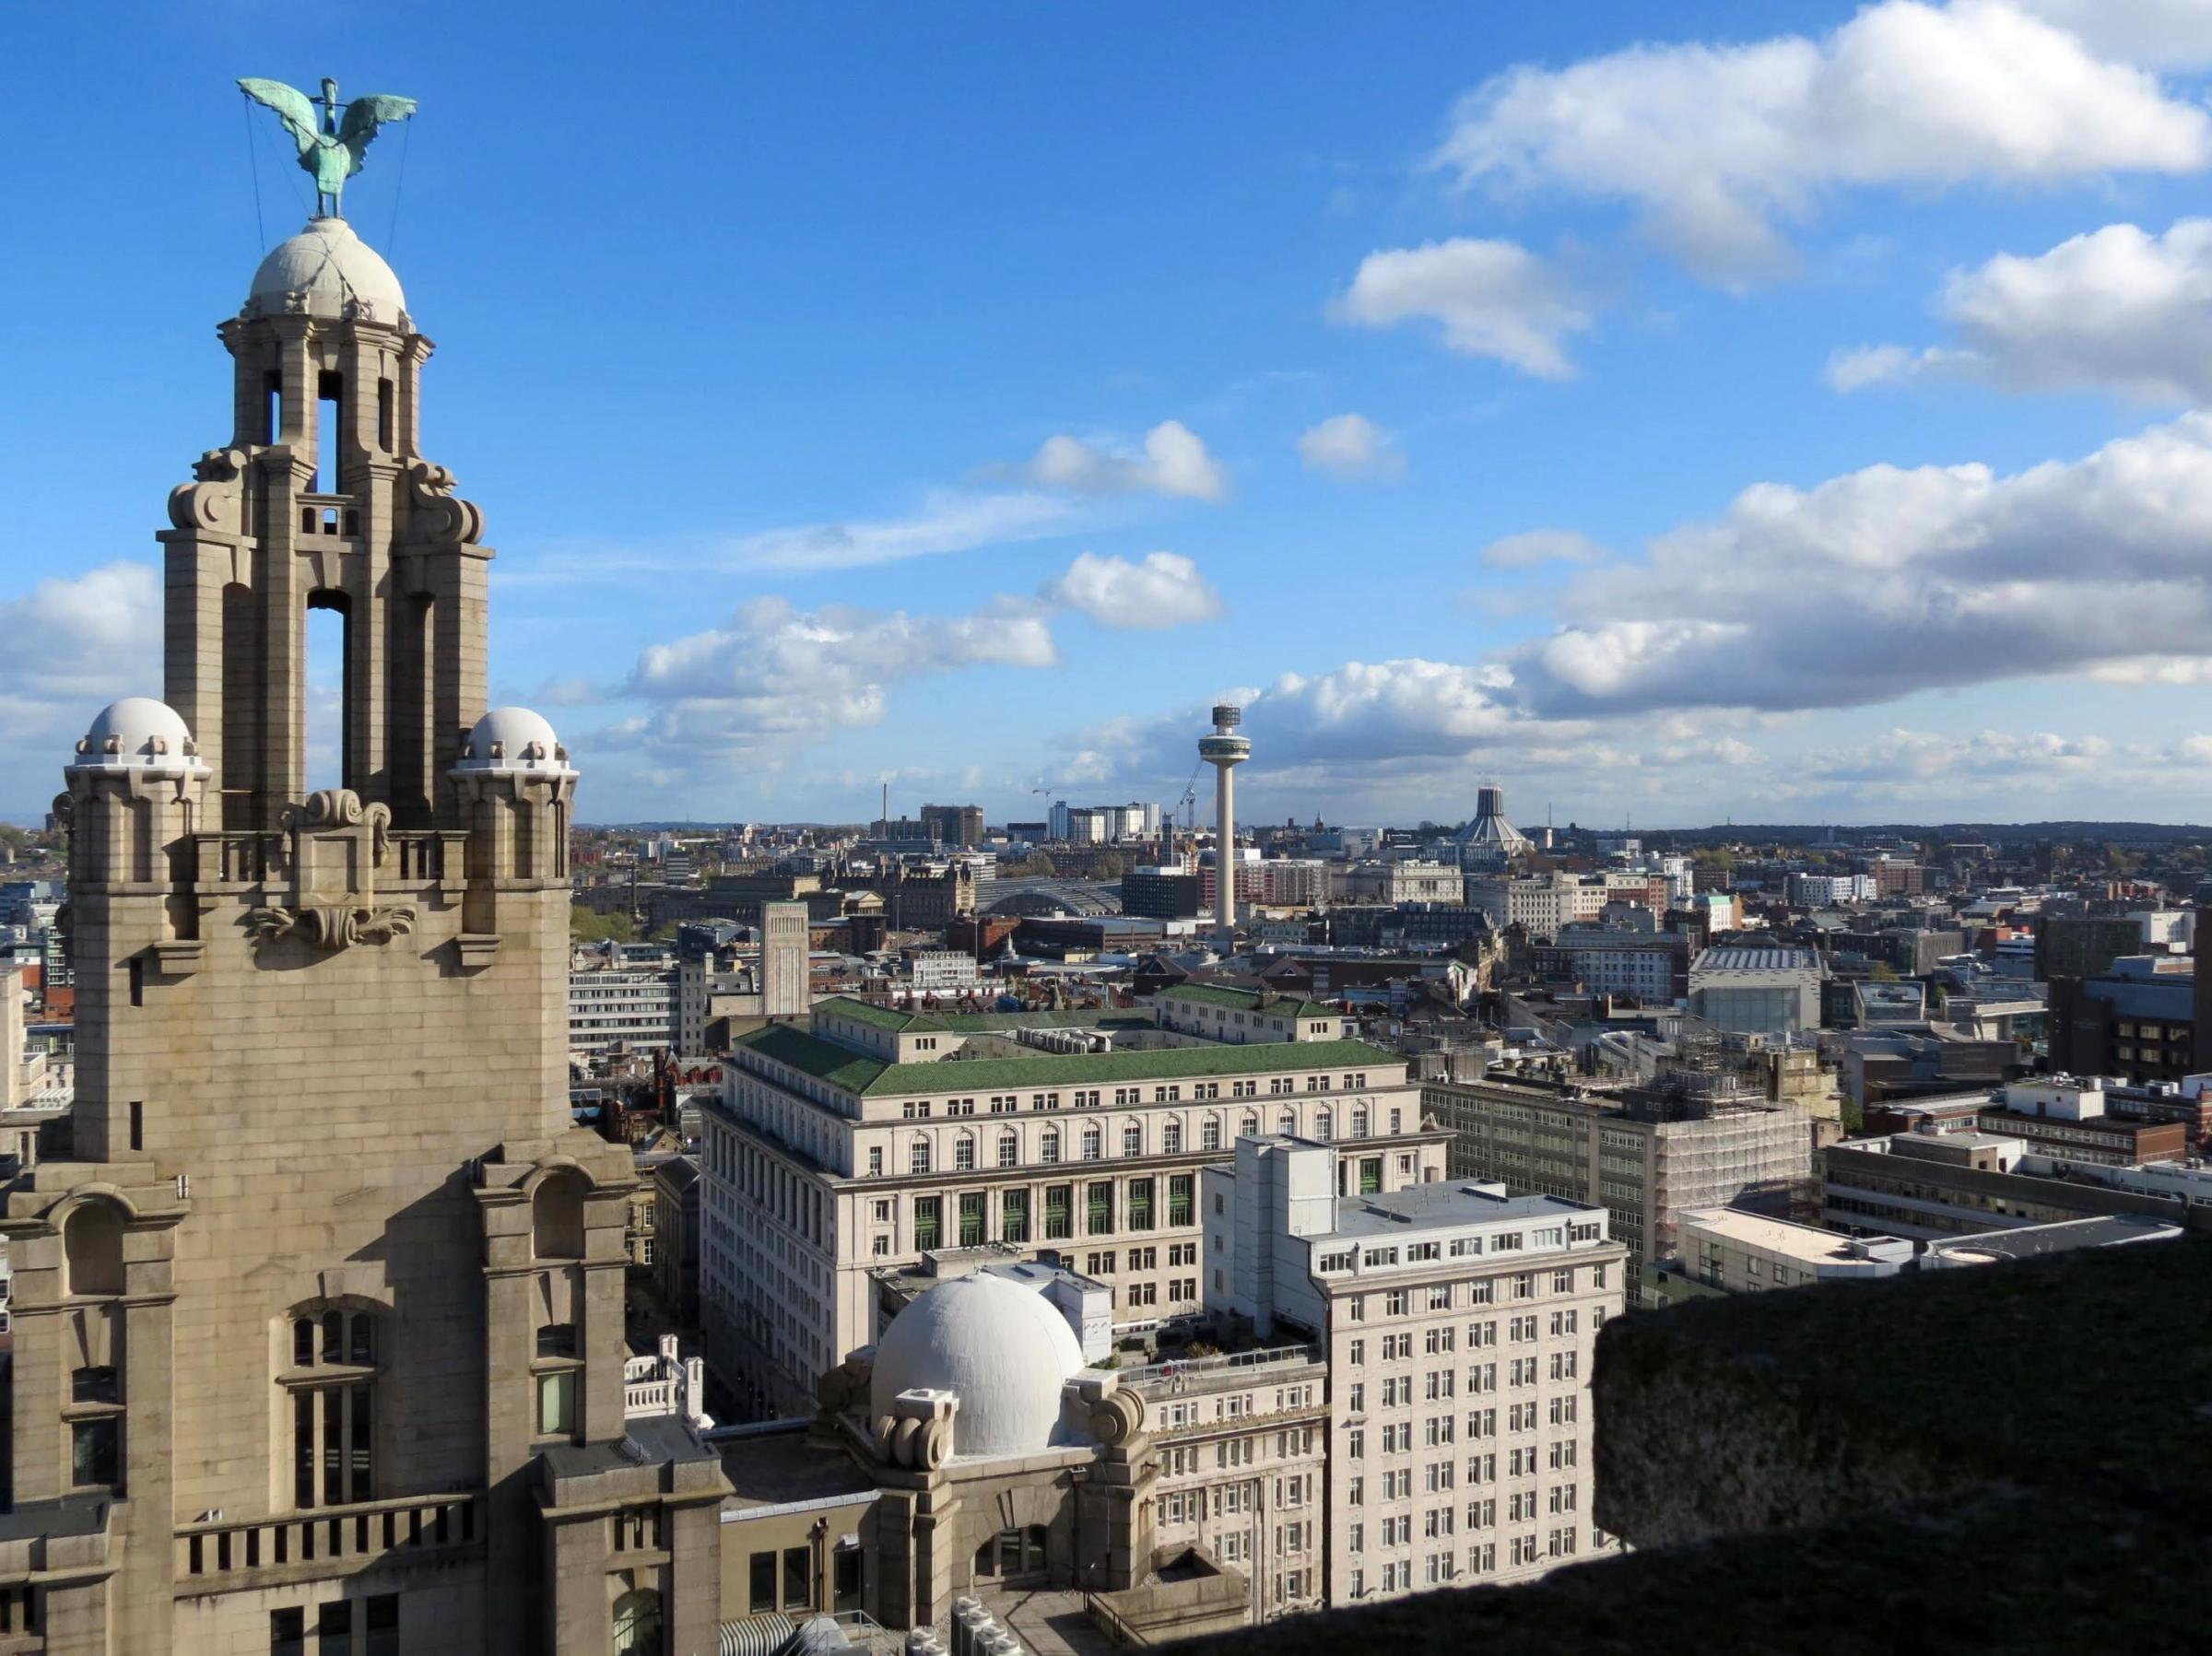 Further details have been revealed about a new visitor attraction opening inside Liverpool's Royal Liver Building